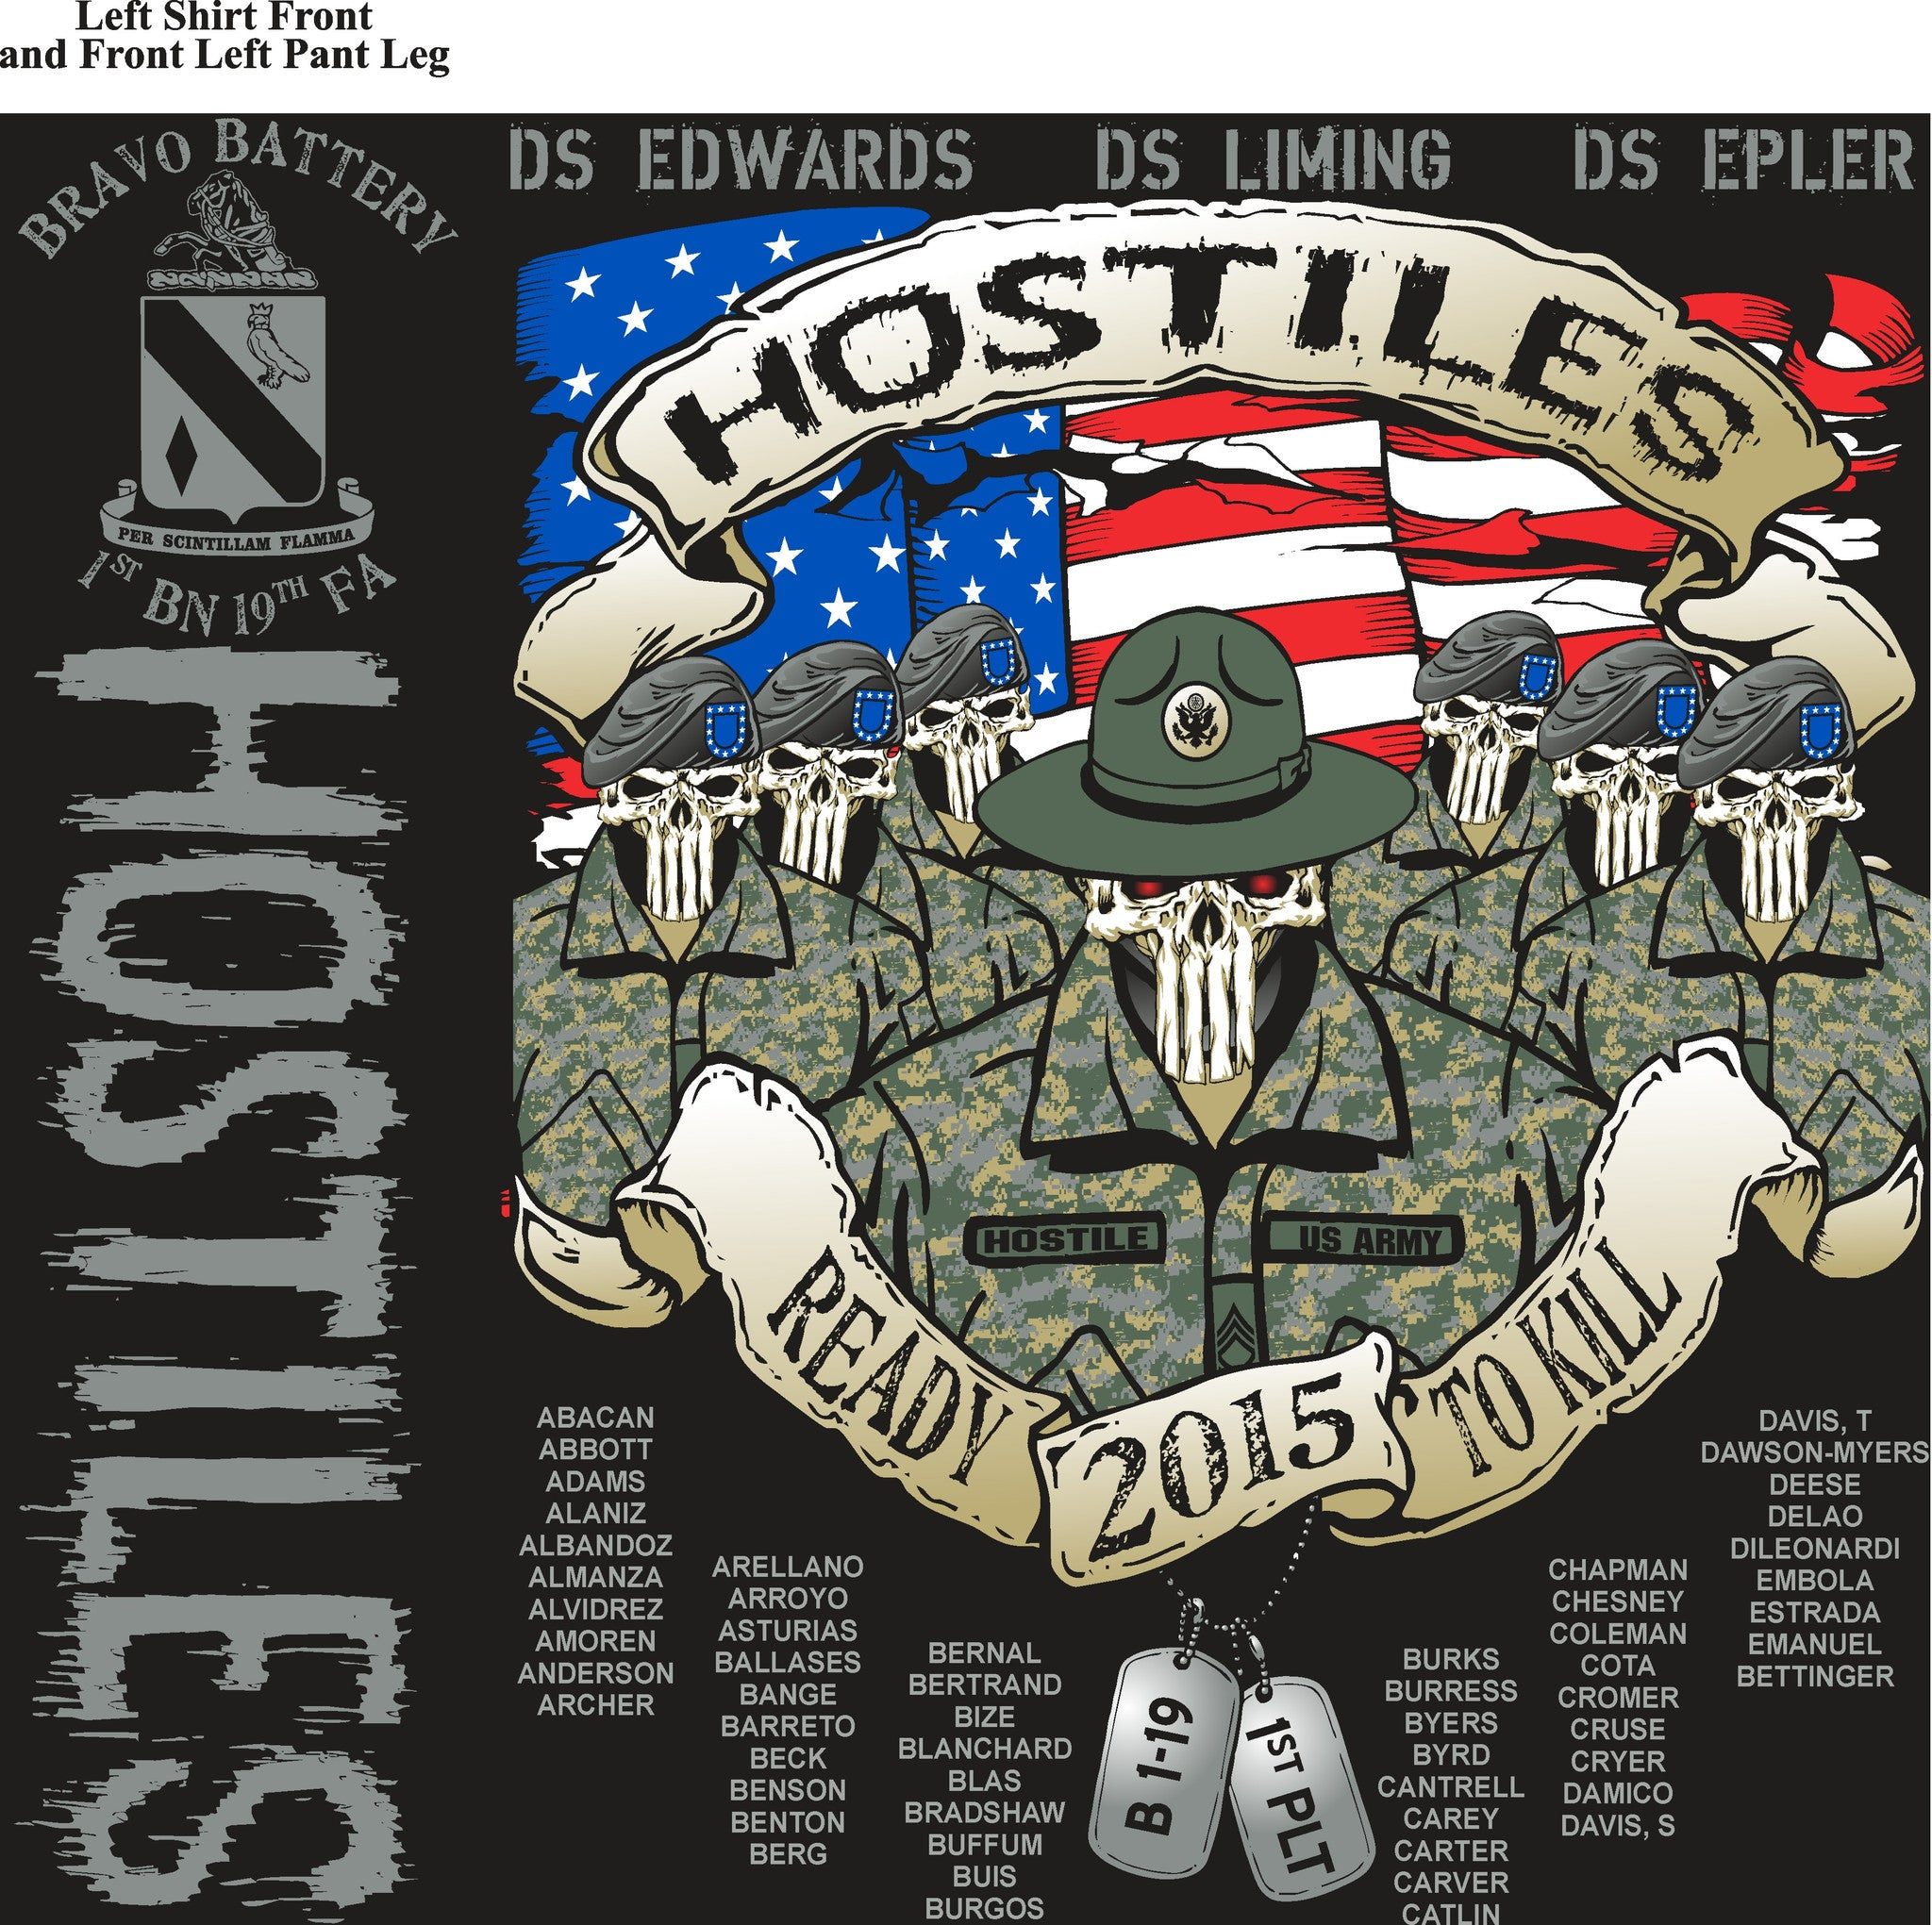 Platoon Shirts BRAVO 1st 19th HOSTILES APR 2015